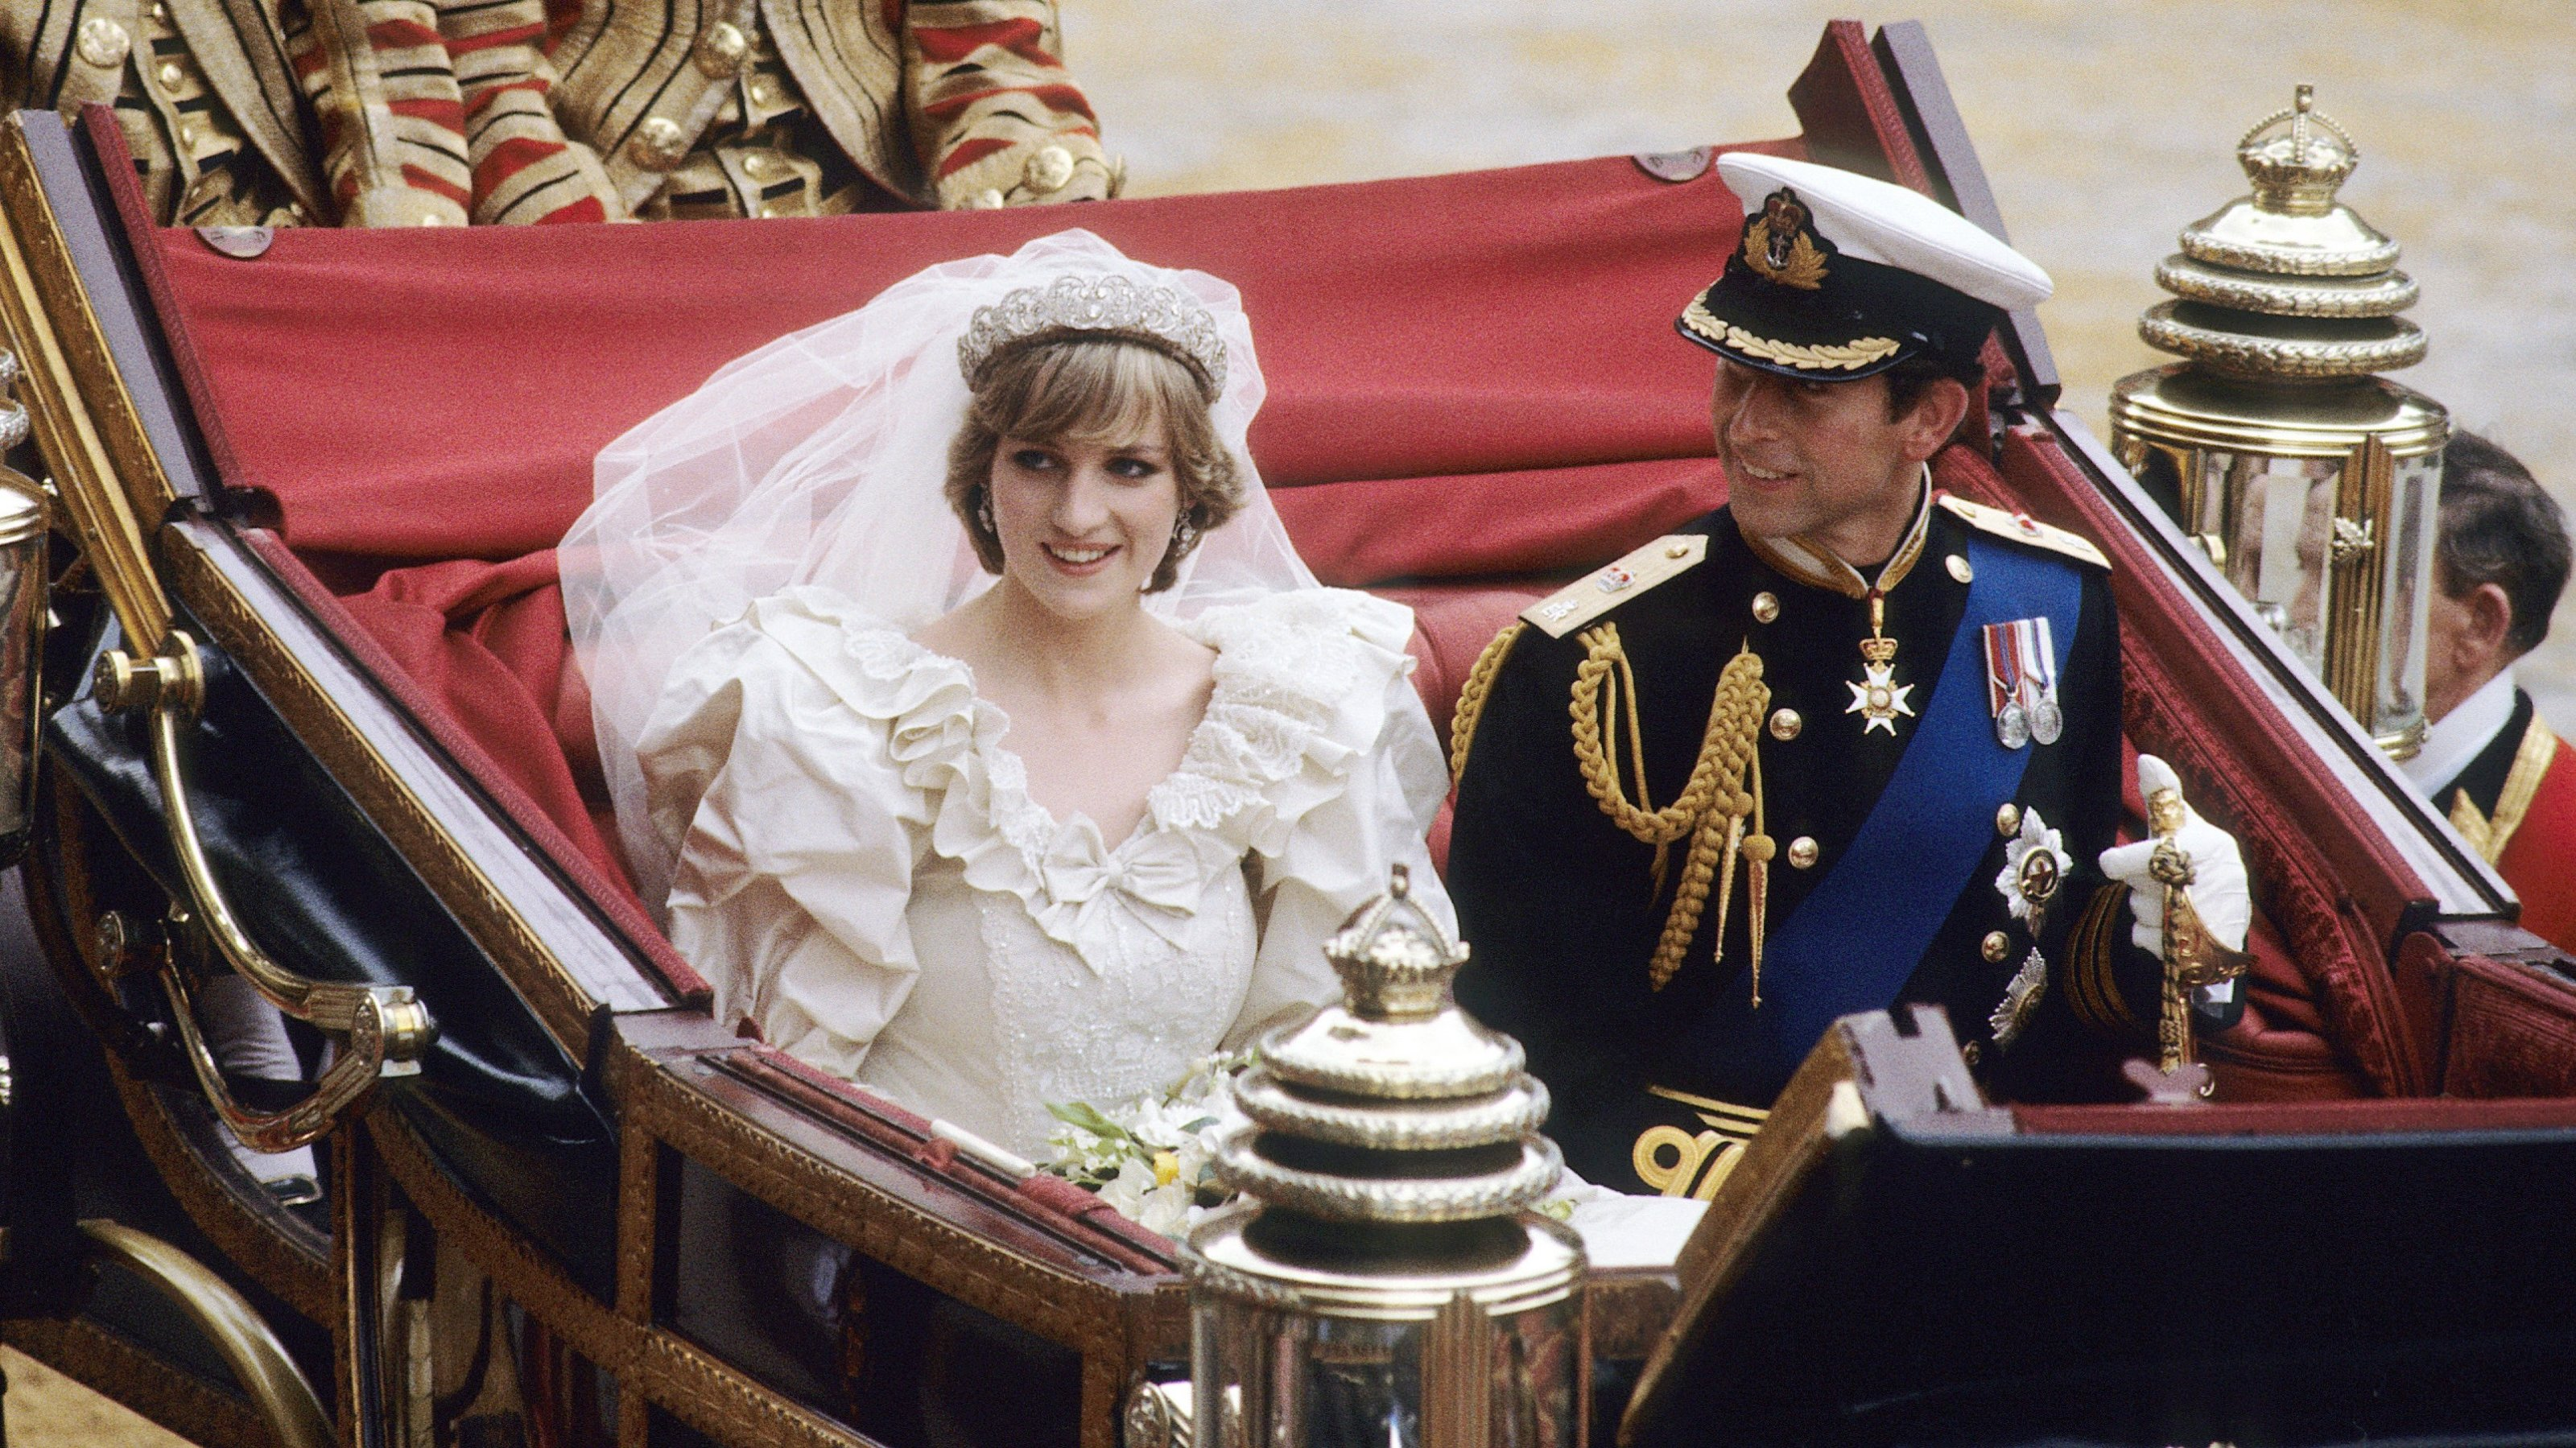 Princess Diana's wedding tiara, also known as the Spencer Tiara, worn by Diana on her special day